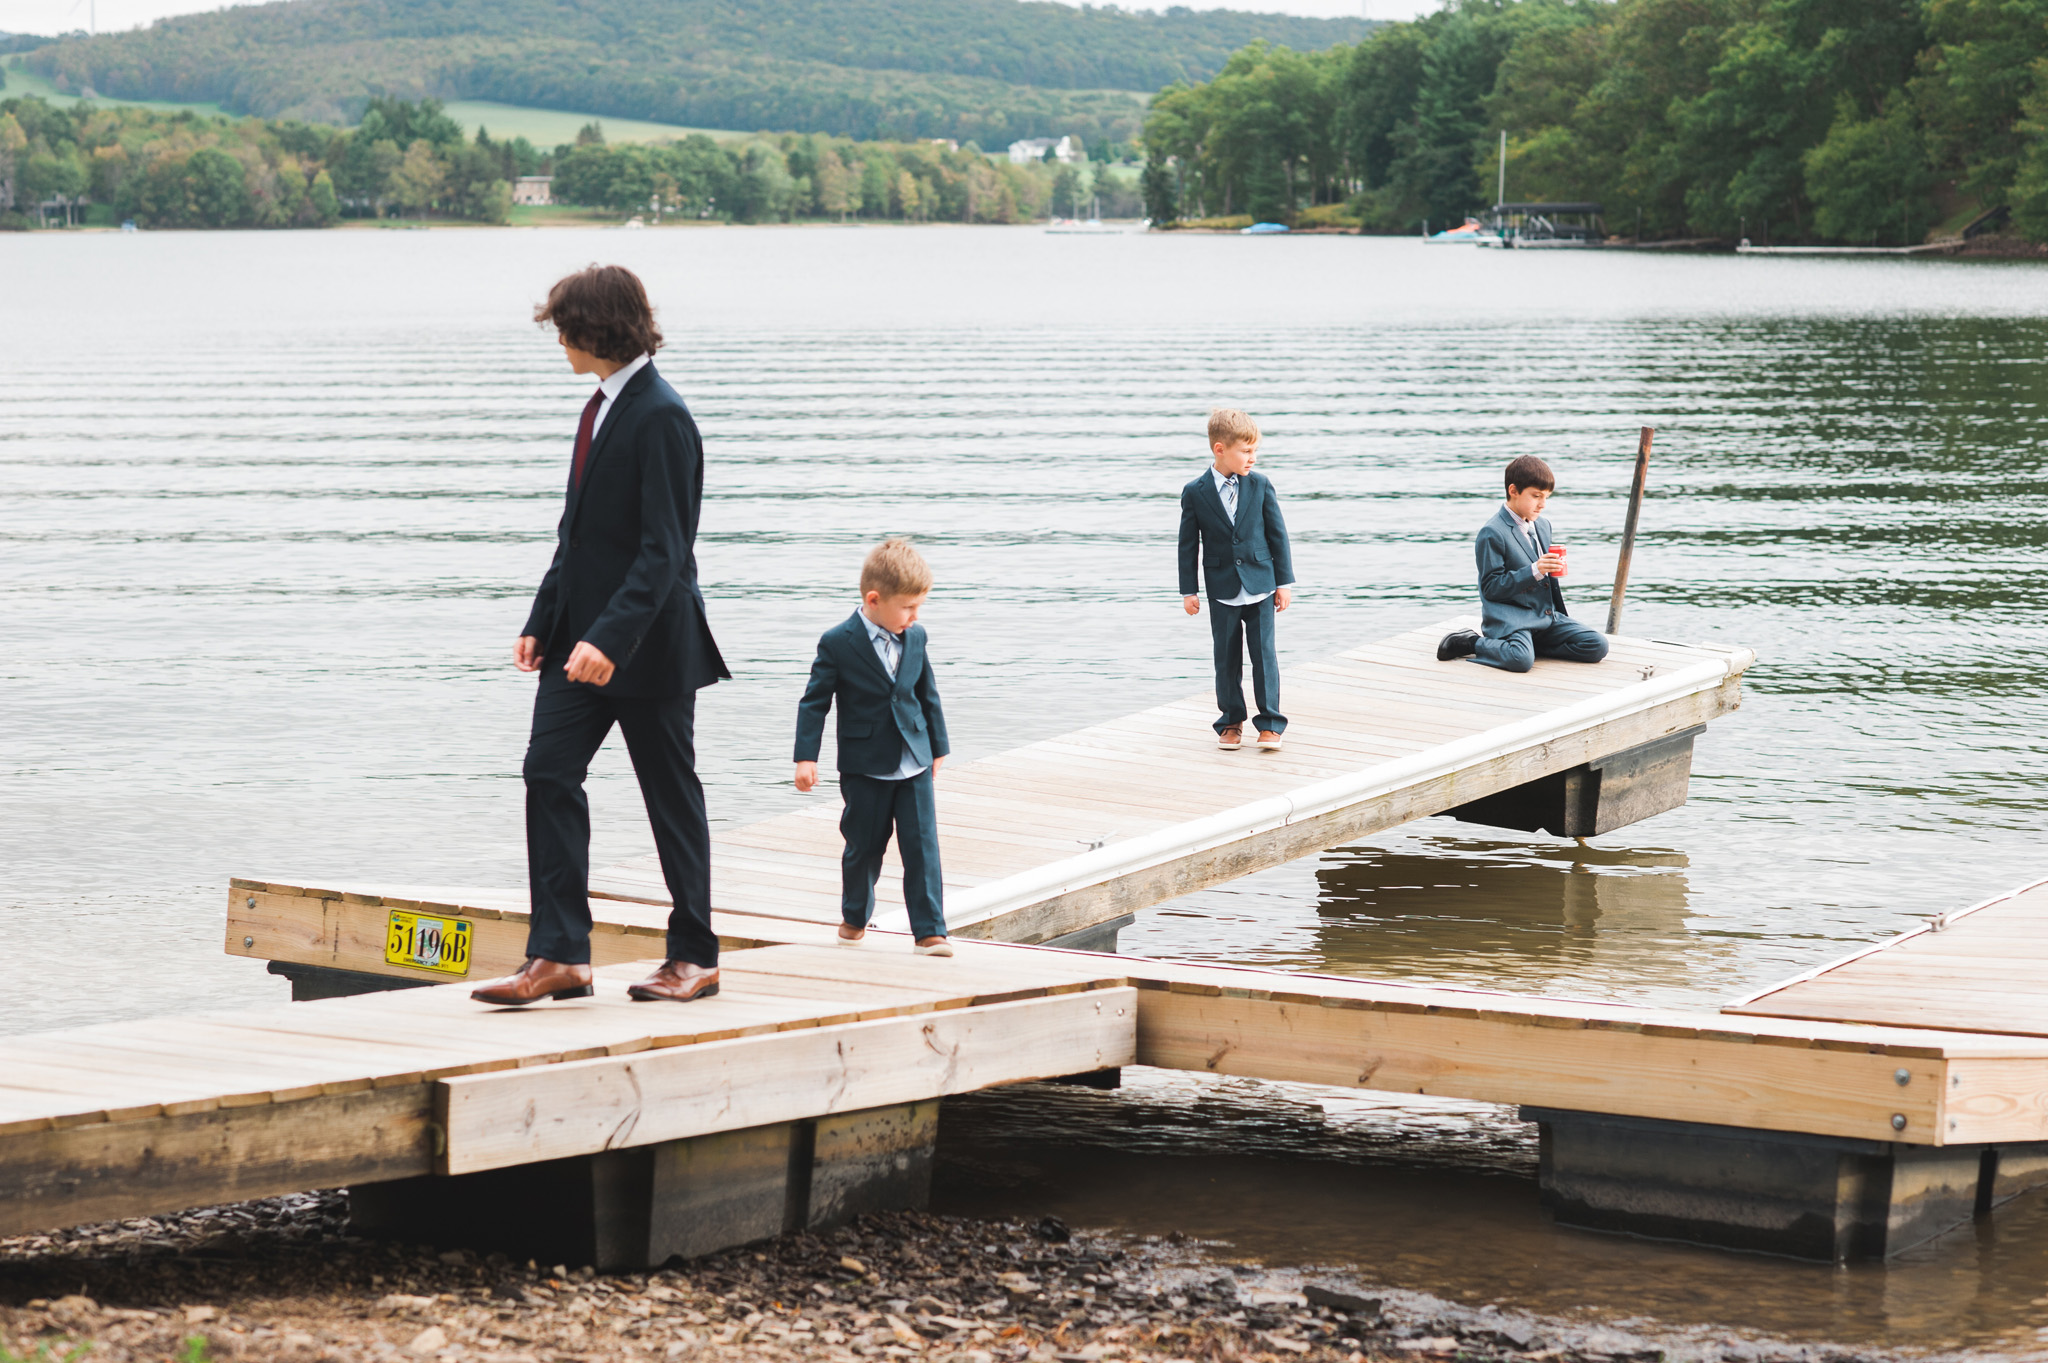 kids playing at a wedding reception on a dock. Documentary wedding photography by Erin Borzellino